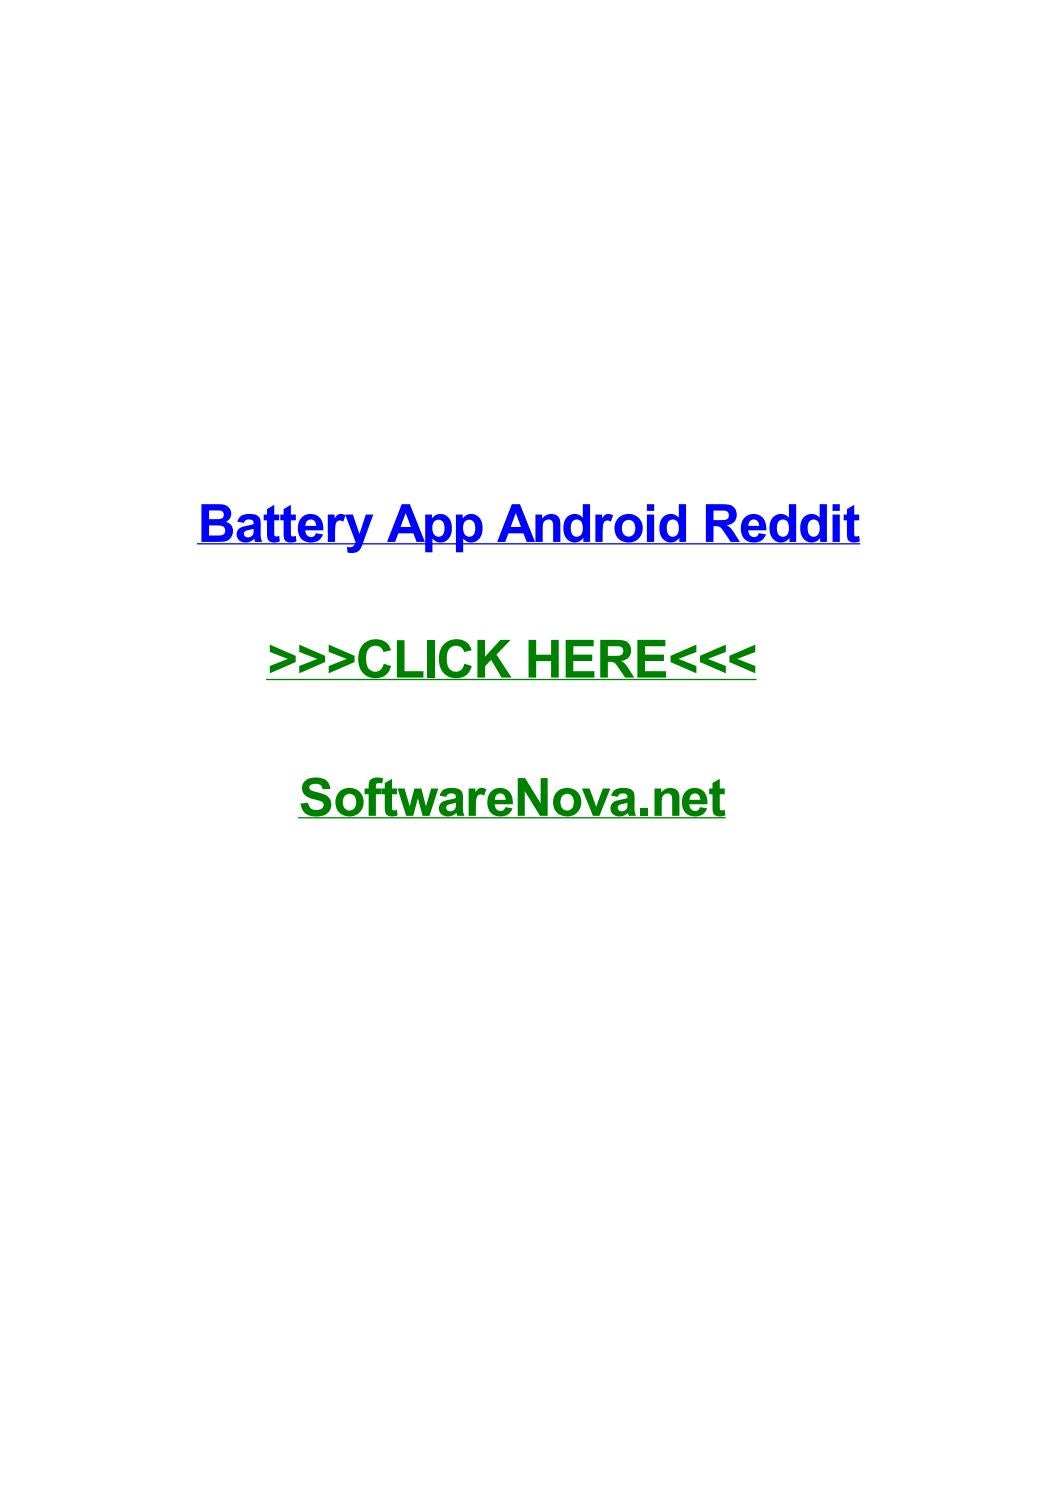 Battery app android reddit by rachelkilxg - issuu